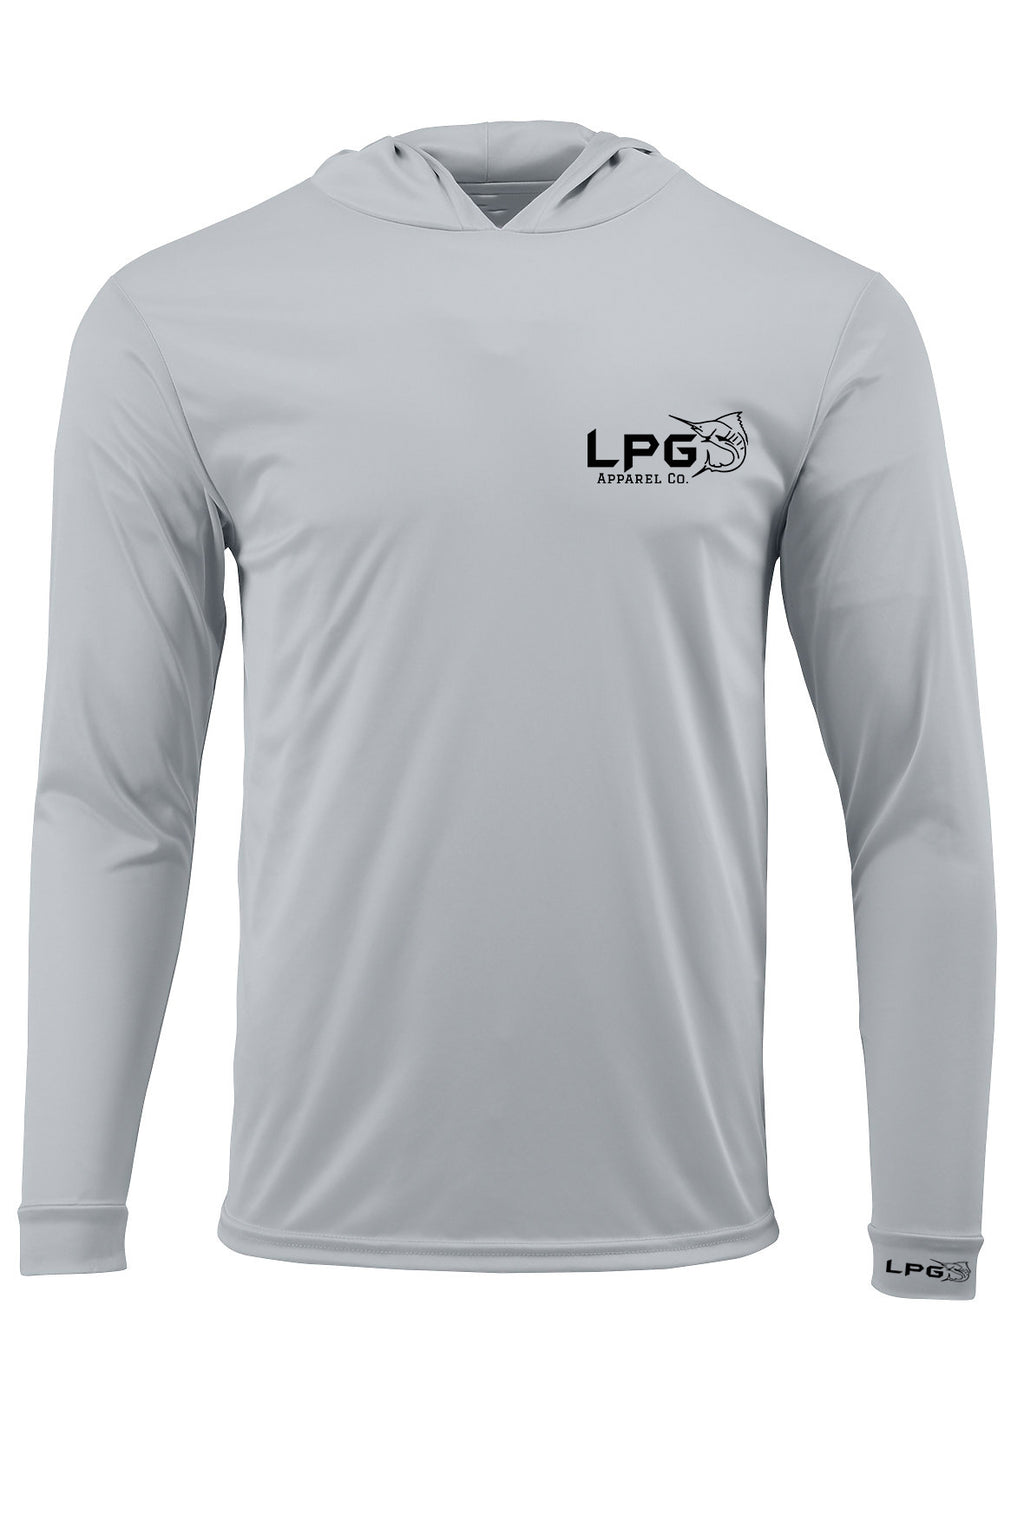 LPG Apparel Co. Performance Fishing Hoodie UPF 50+ Dri-Fit UV Protection Men & Women Long Sleeve T-Shirt